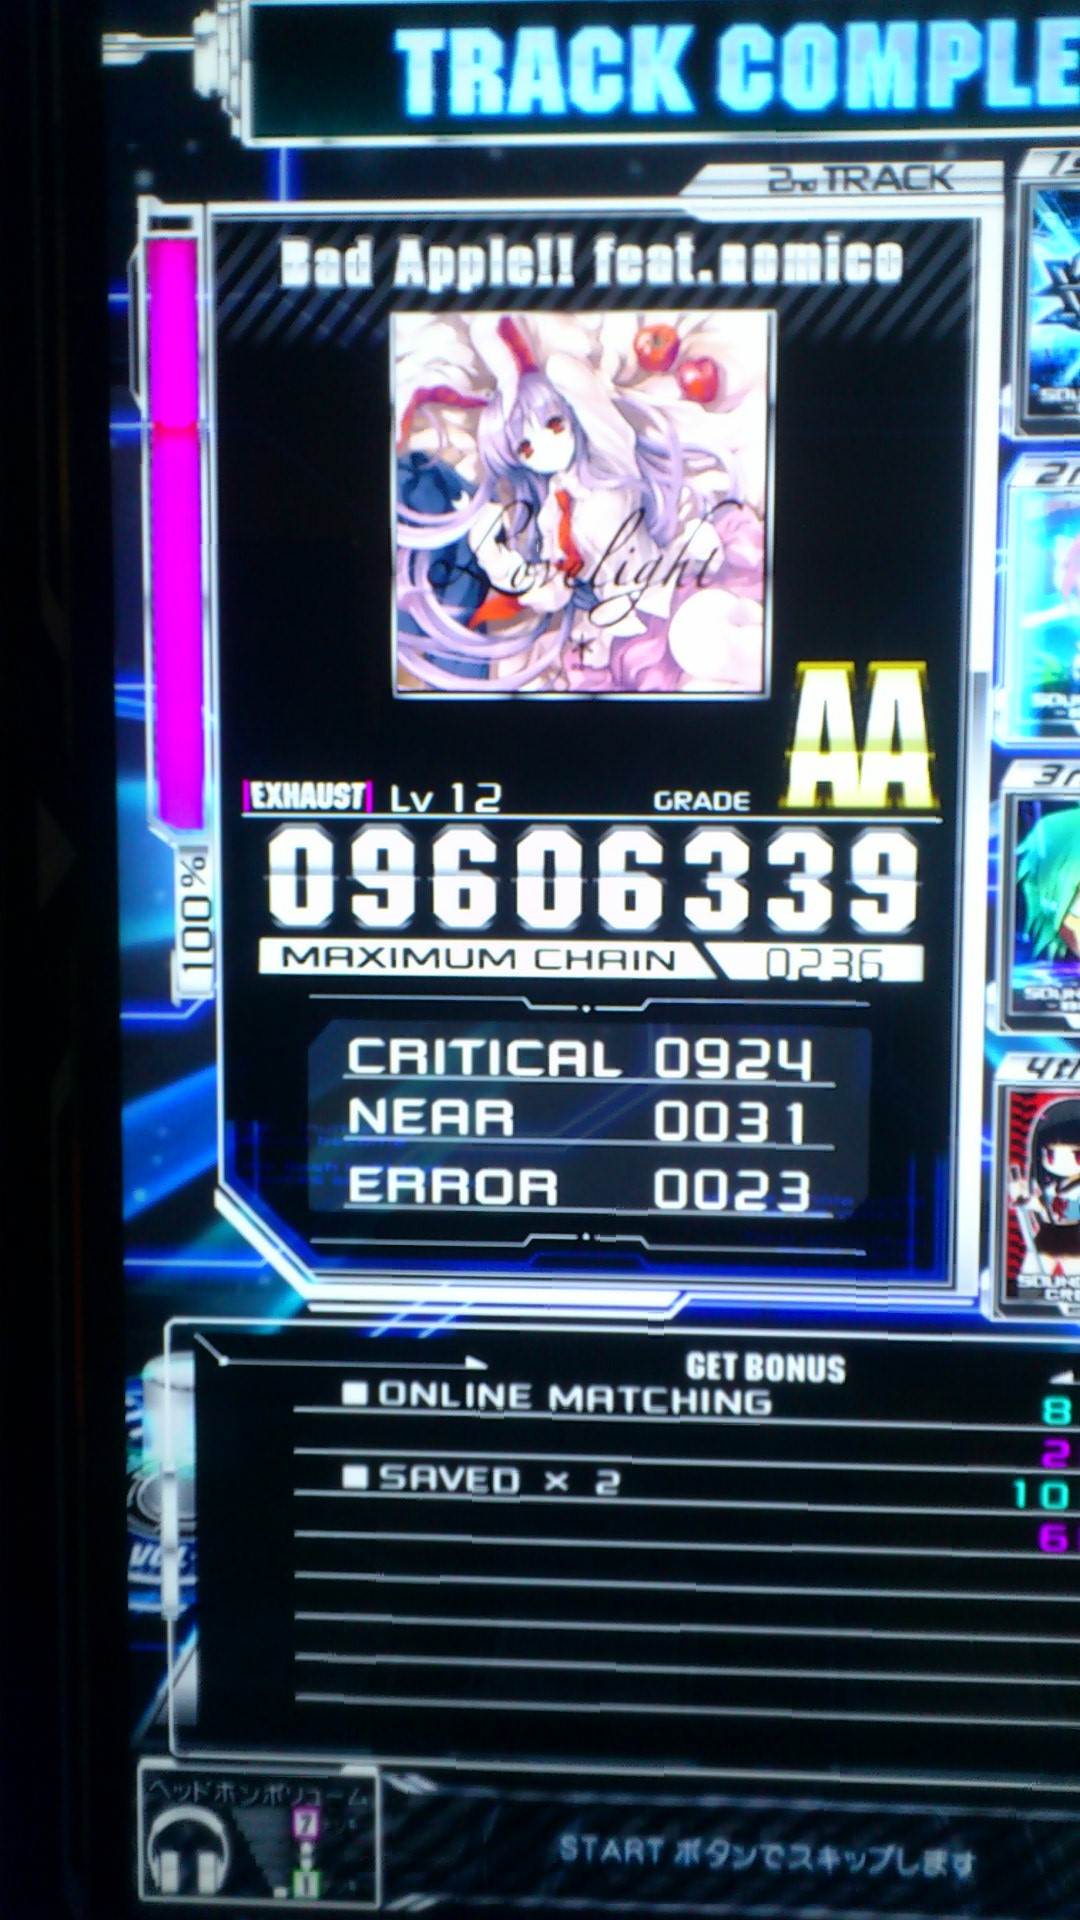 Bad Apple AA